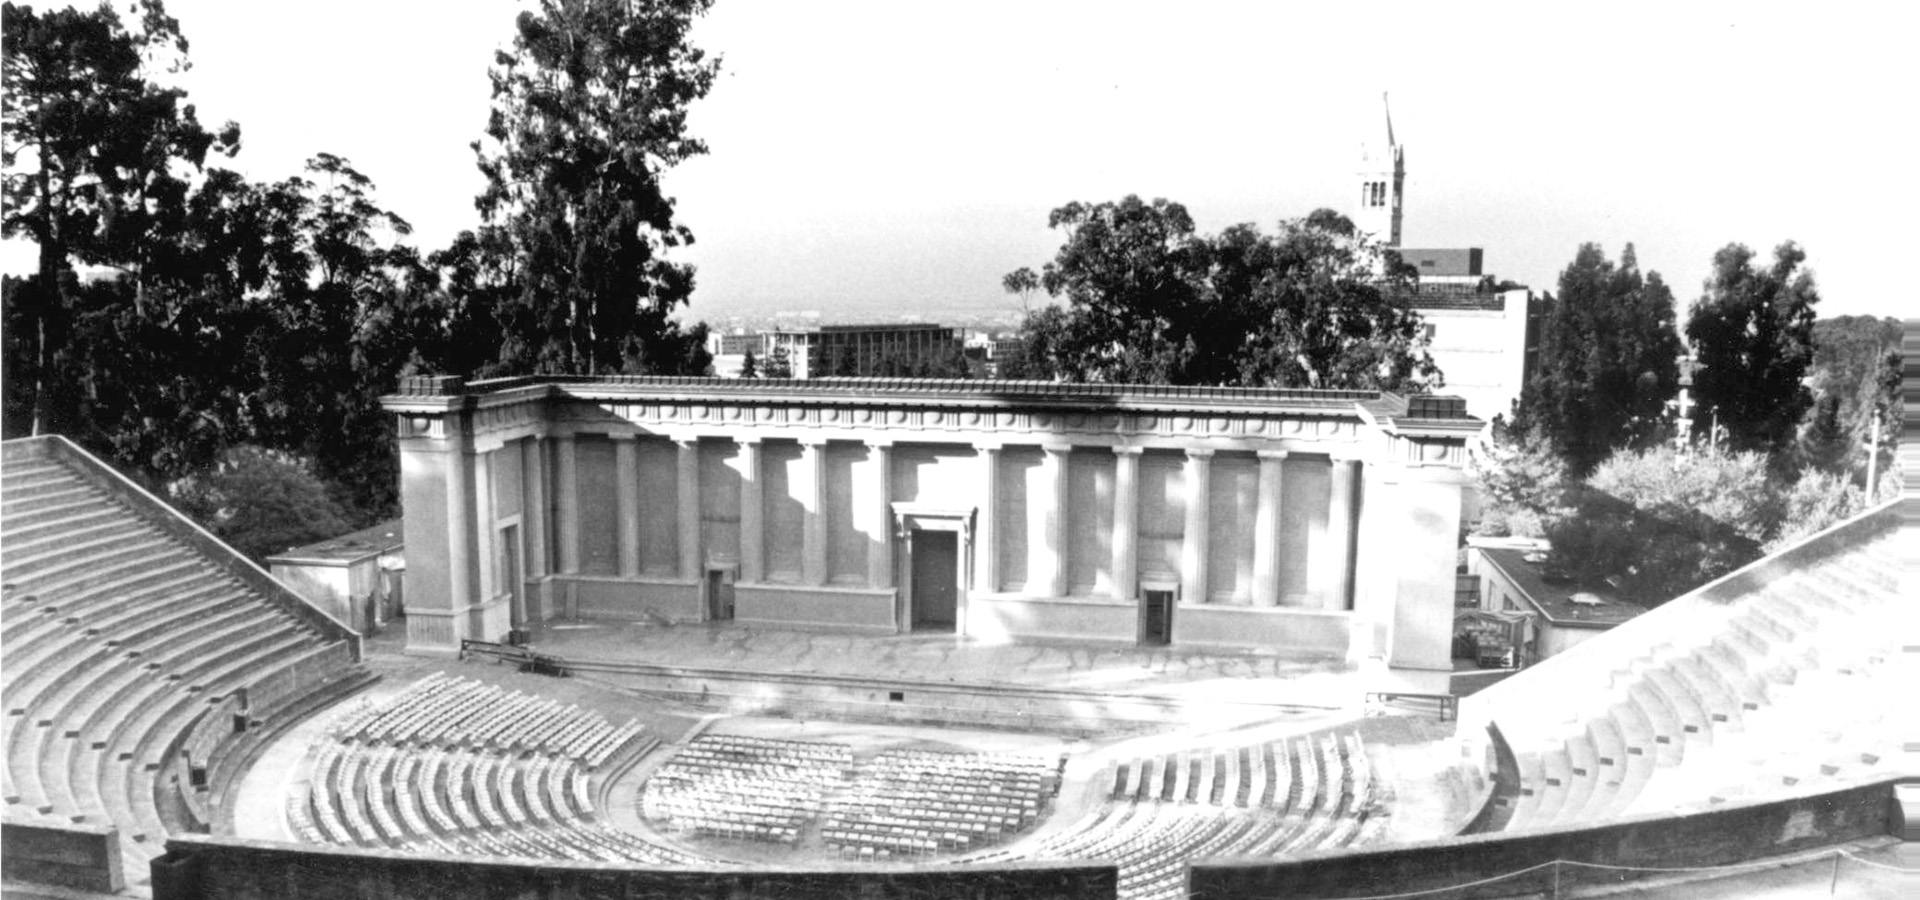 Greek theatre in black and white